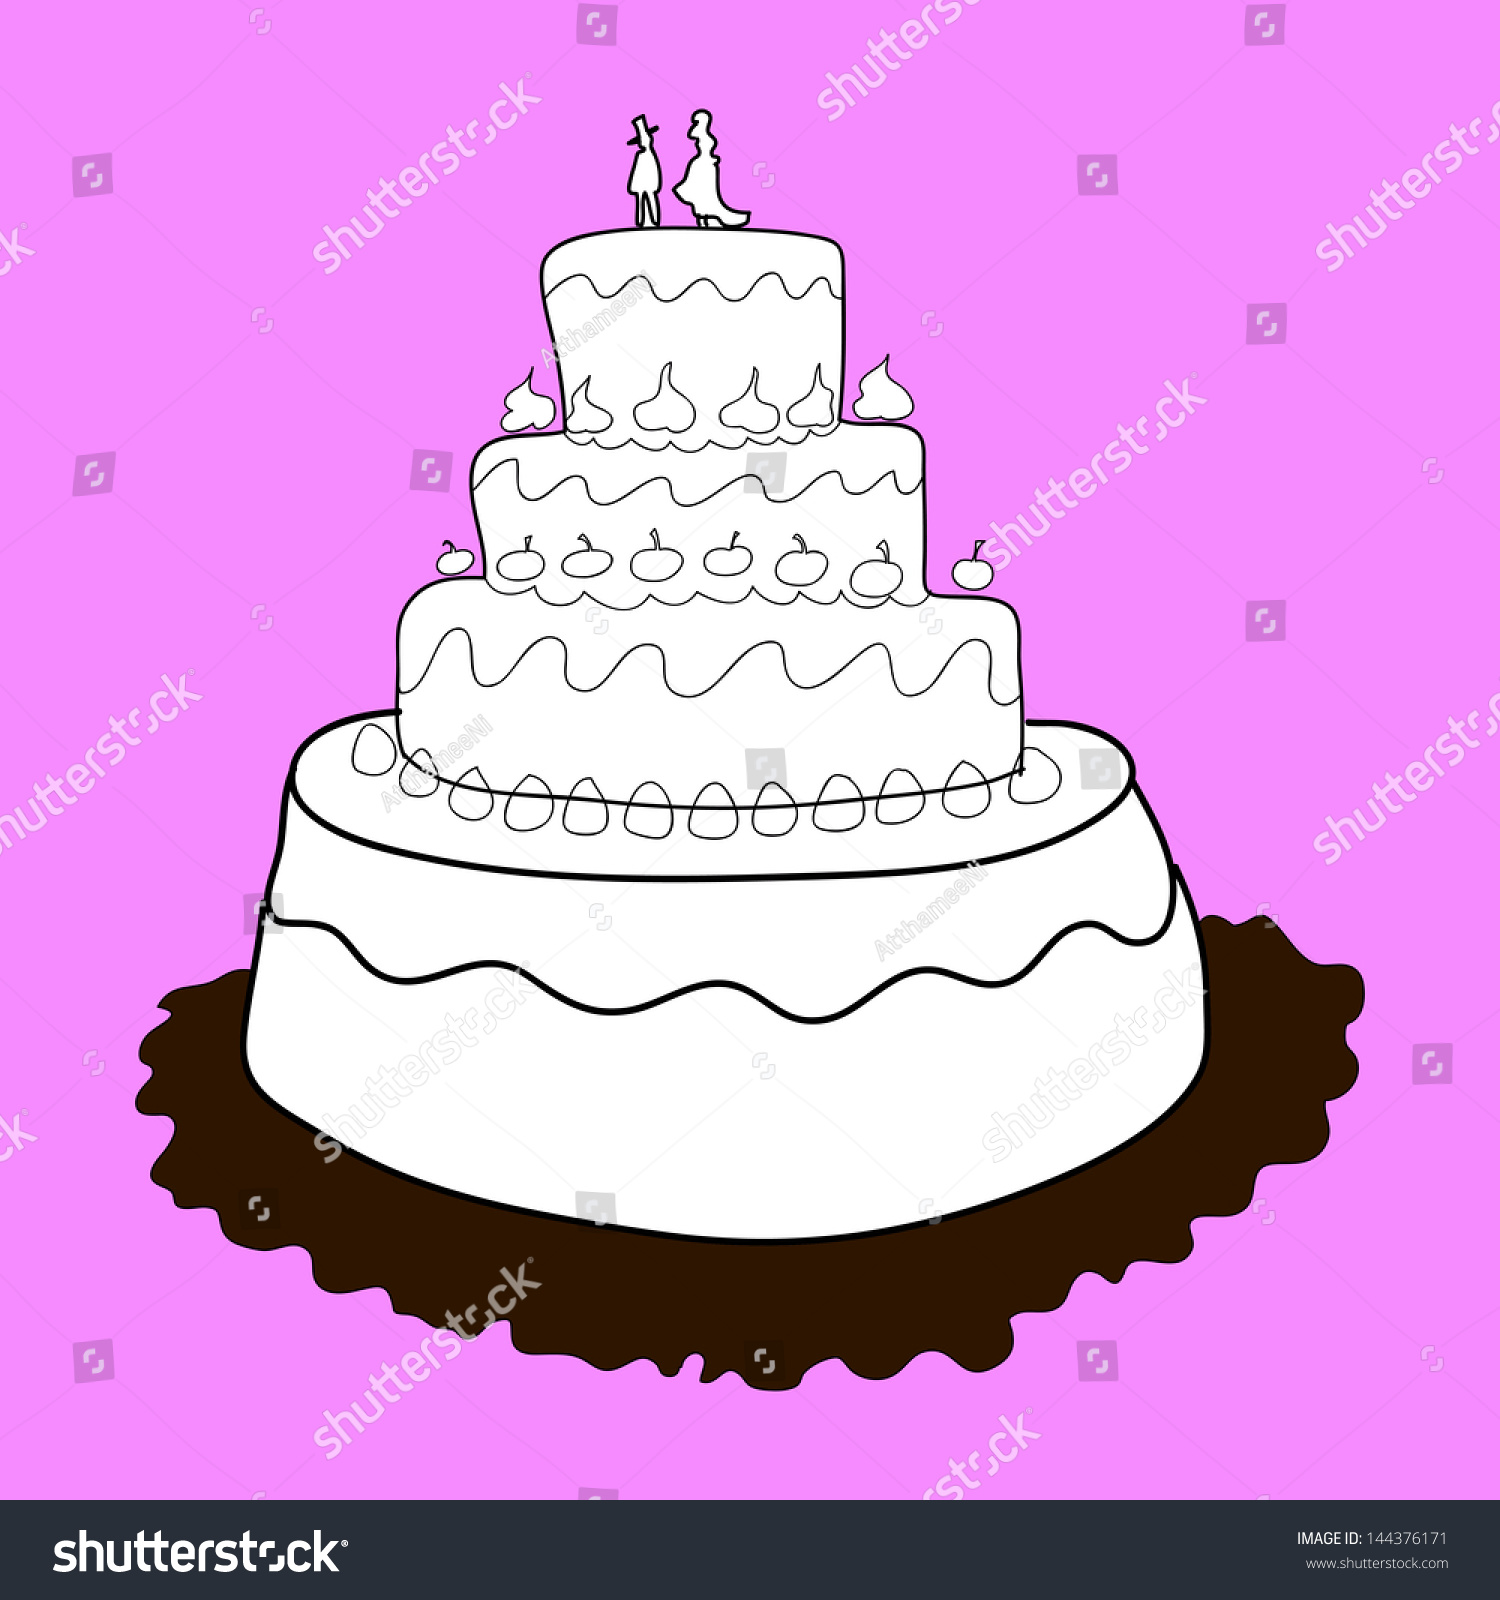 Wedding Cake Images Cartoon : Wedding Cake Cartoon Handdrawn Illustration Stock Vector ...